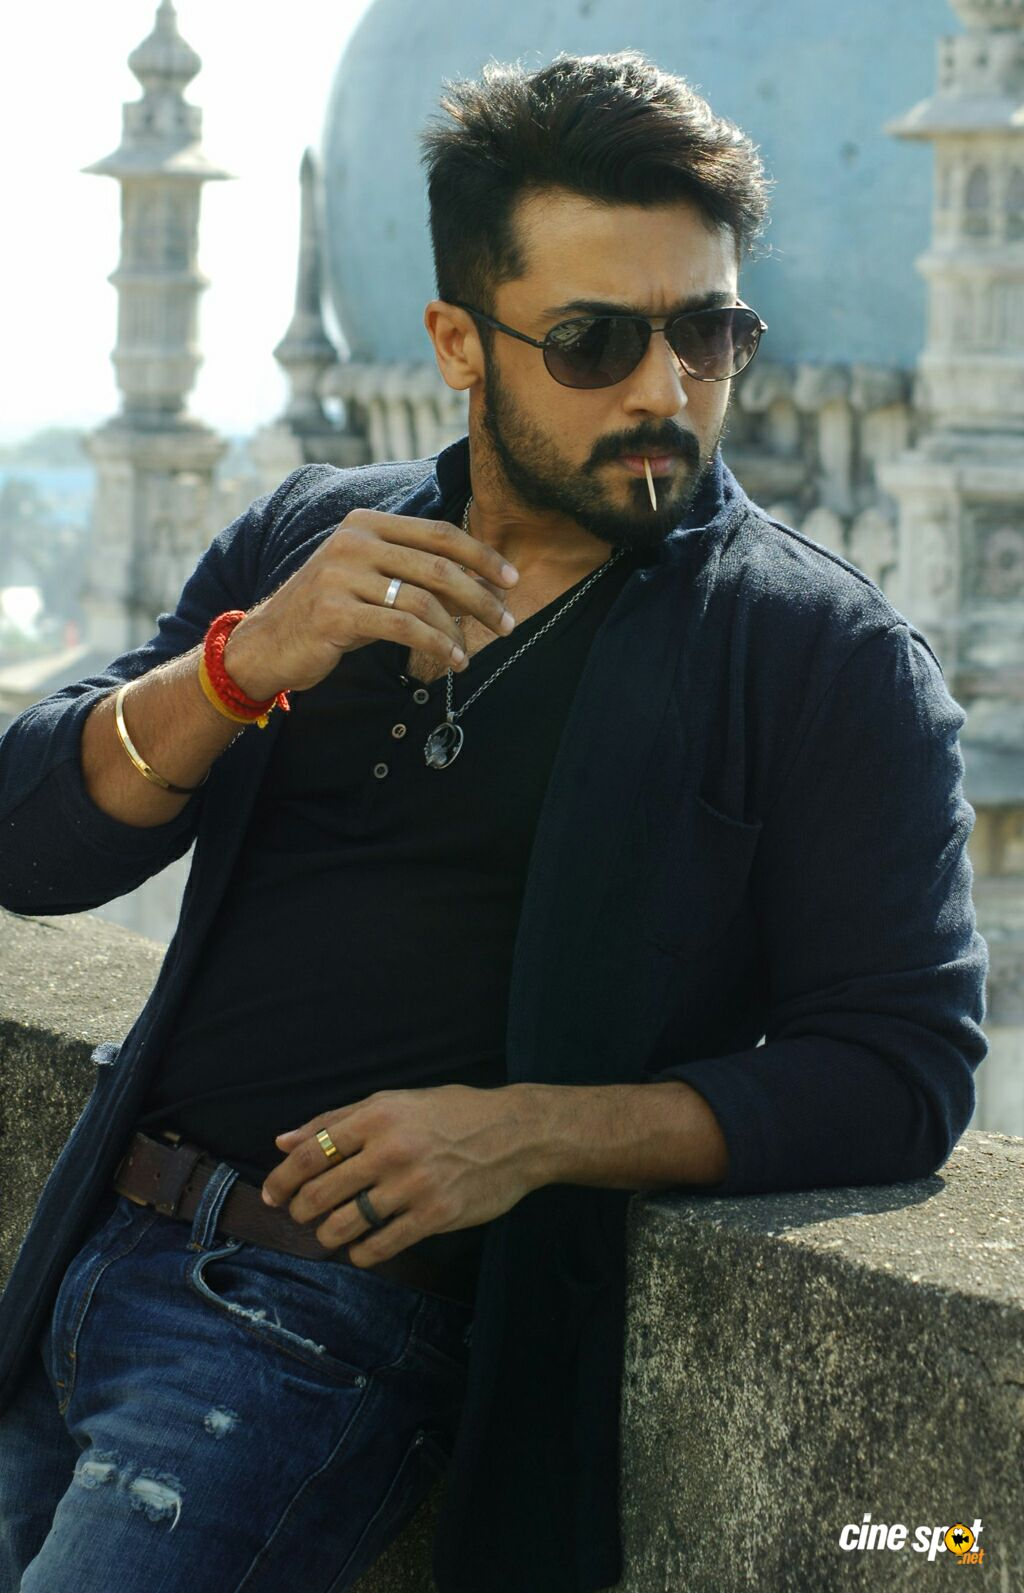 Surya tamil actor new photos anjaan / Song of ice and fire plot spoilers